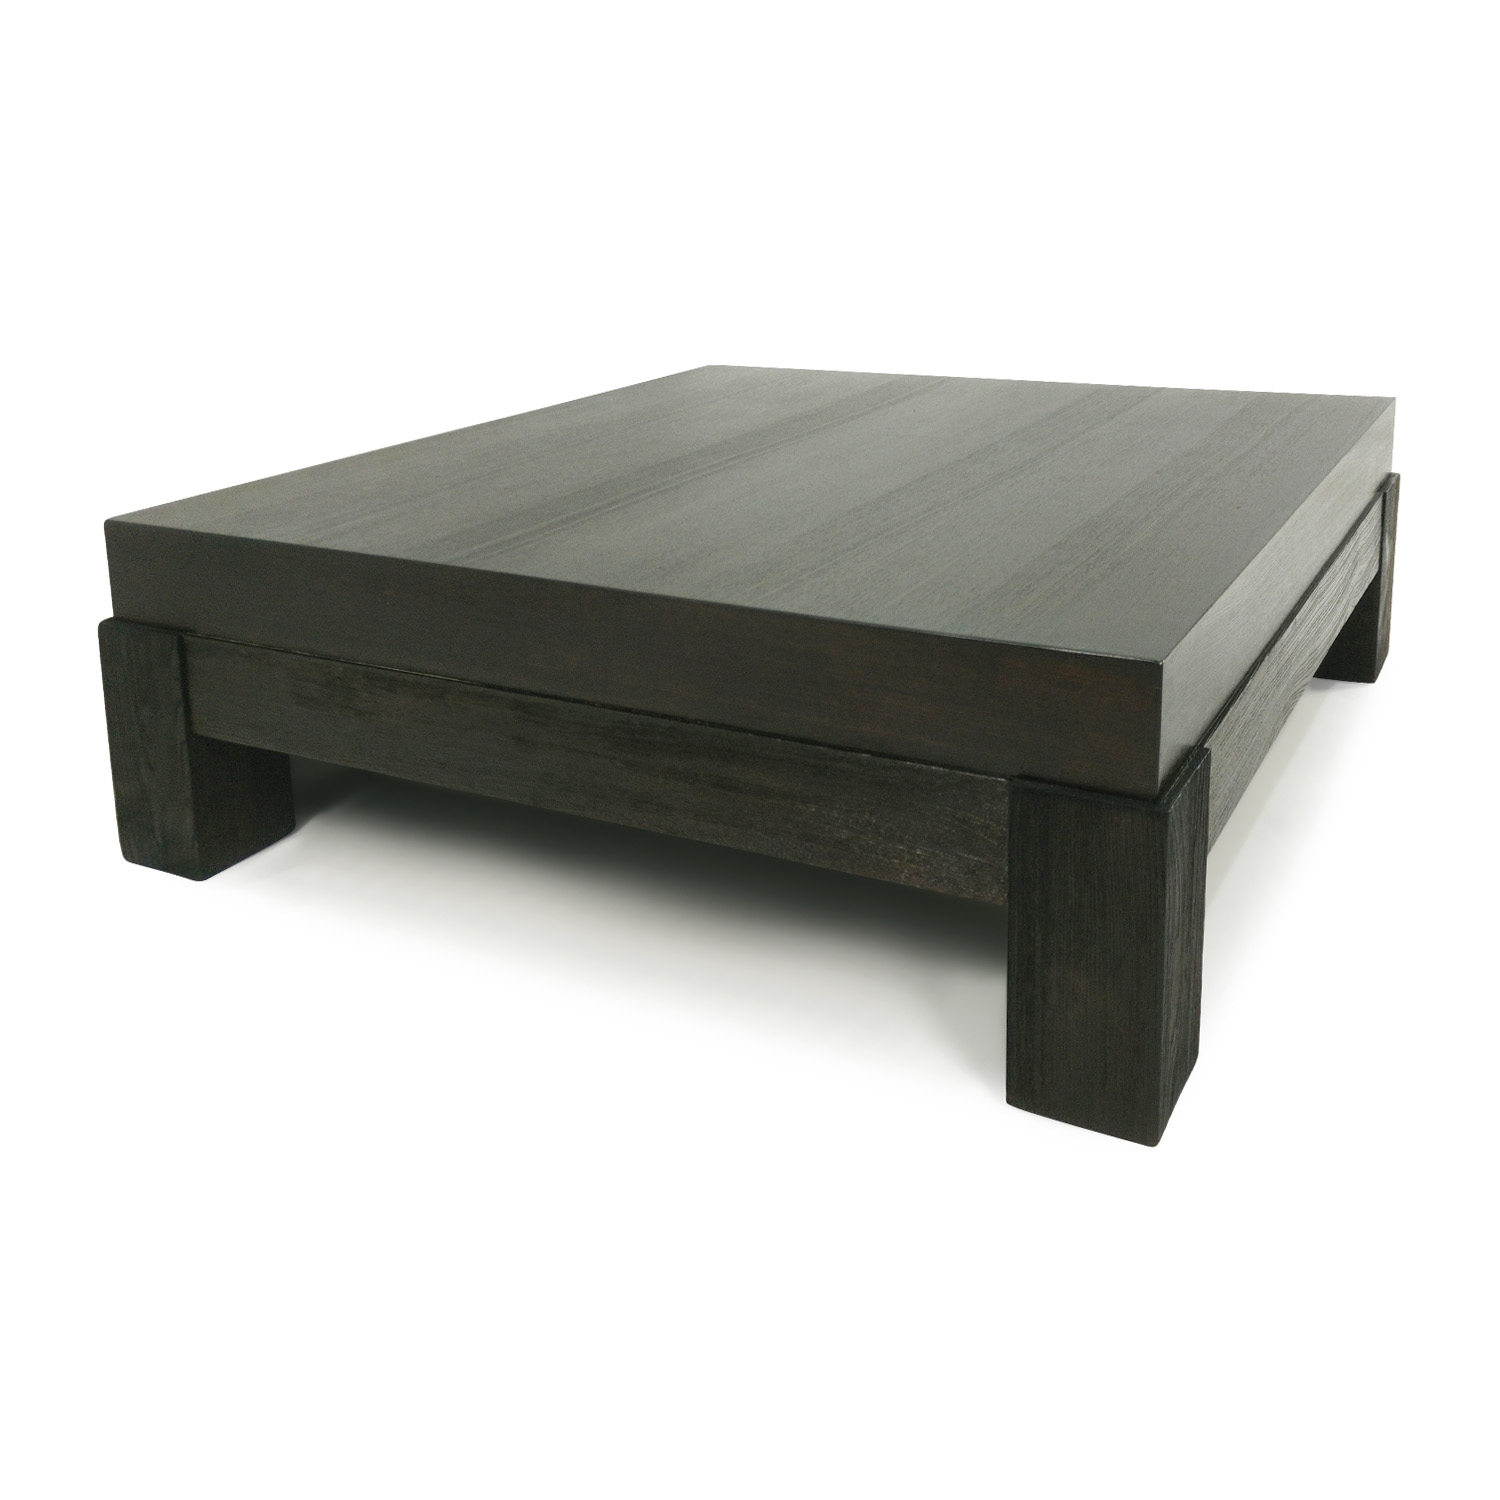 Crate And Barrel Crate Barrel Square Coffee Table